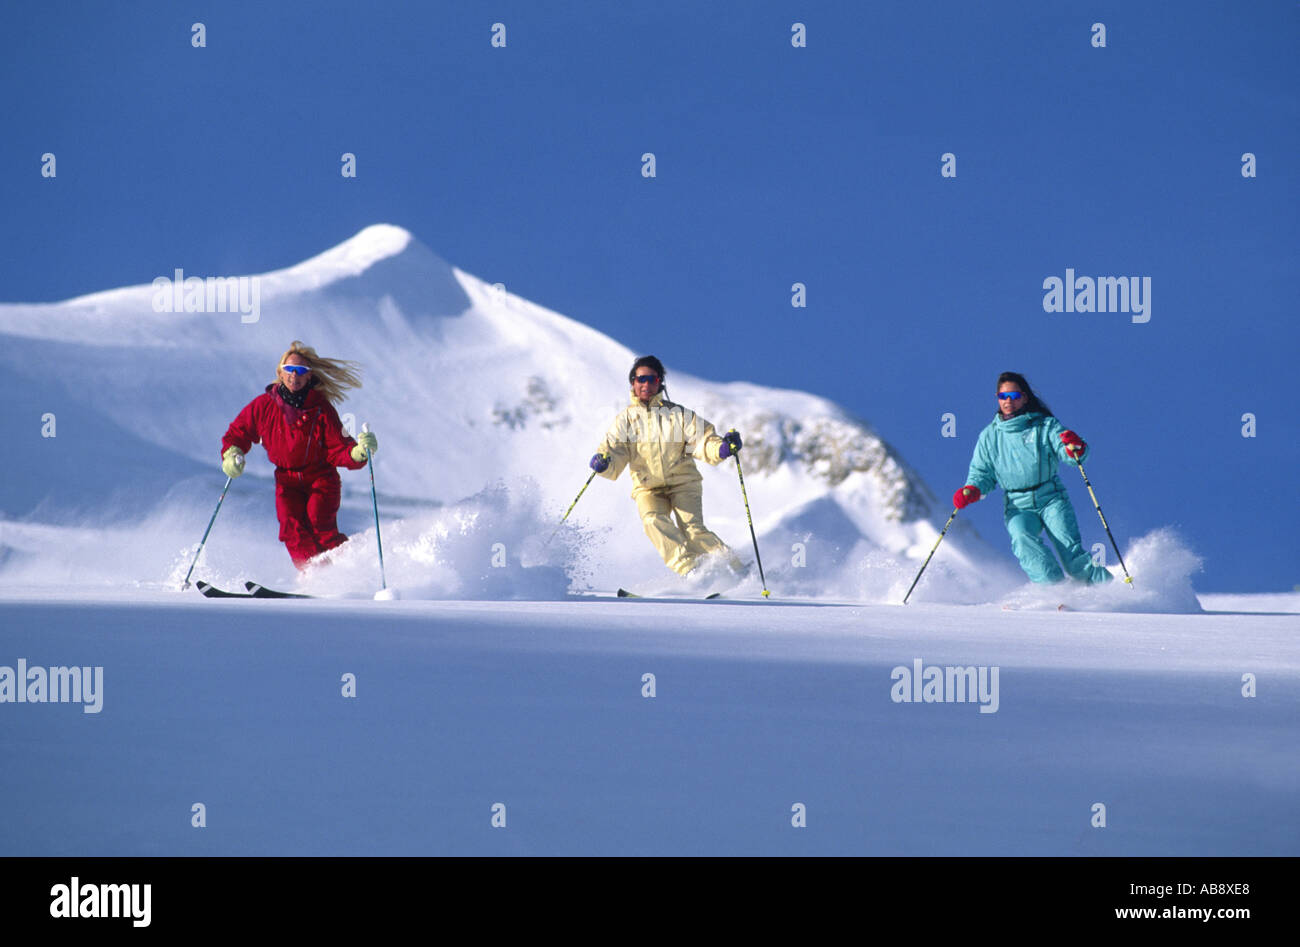 three young women running down a ski piste, side by side, contrasting colours of snowsuits, France, Rhne-Alpes. - Stock Image